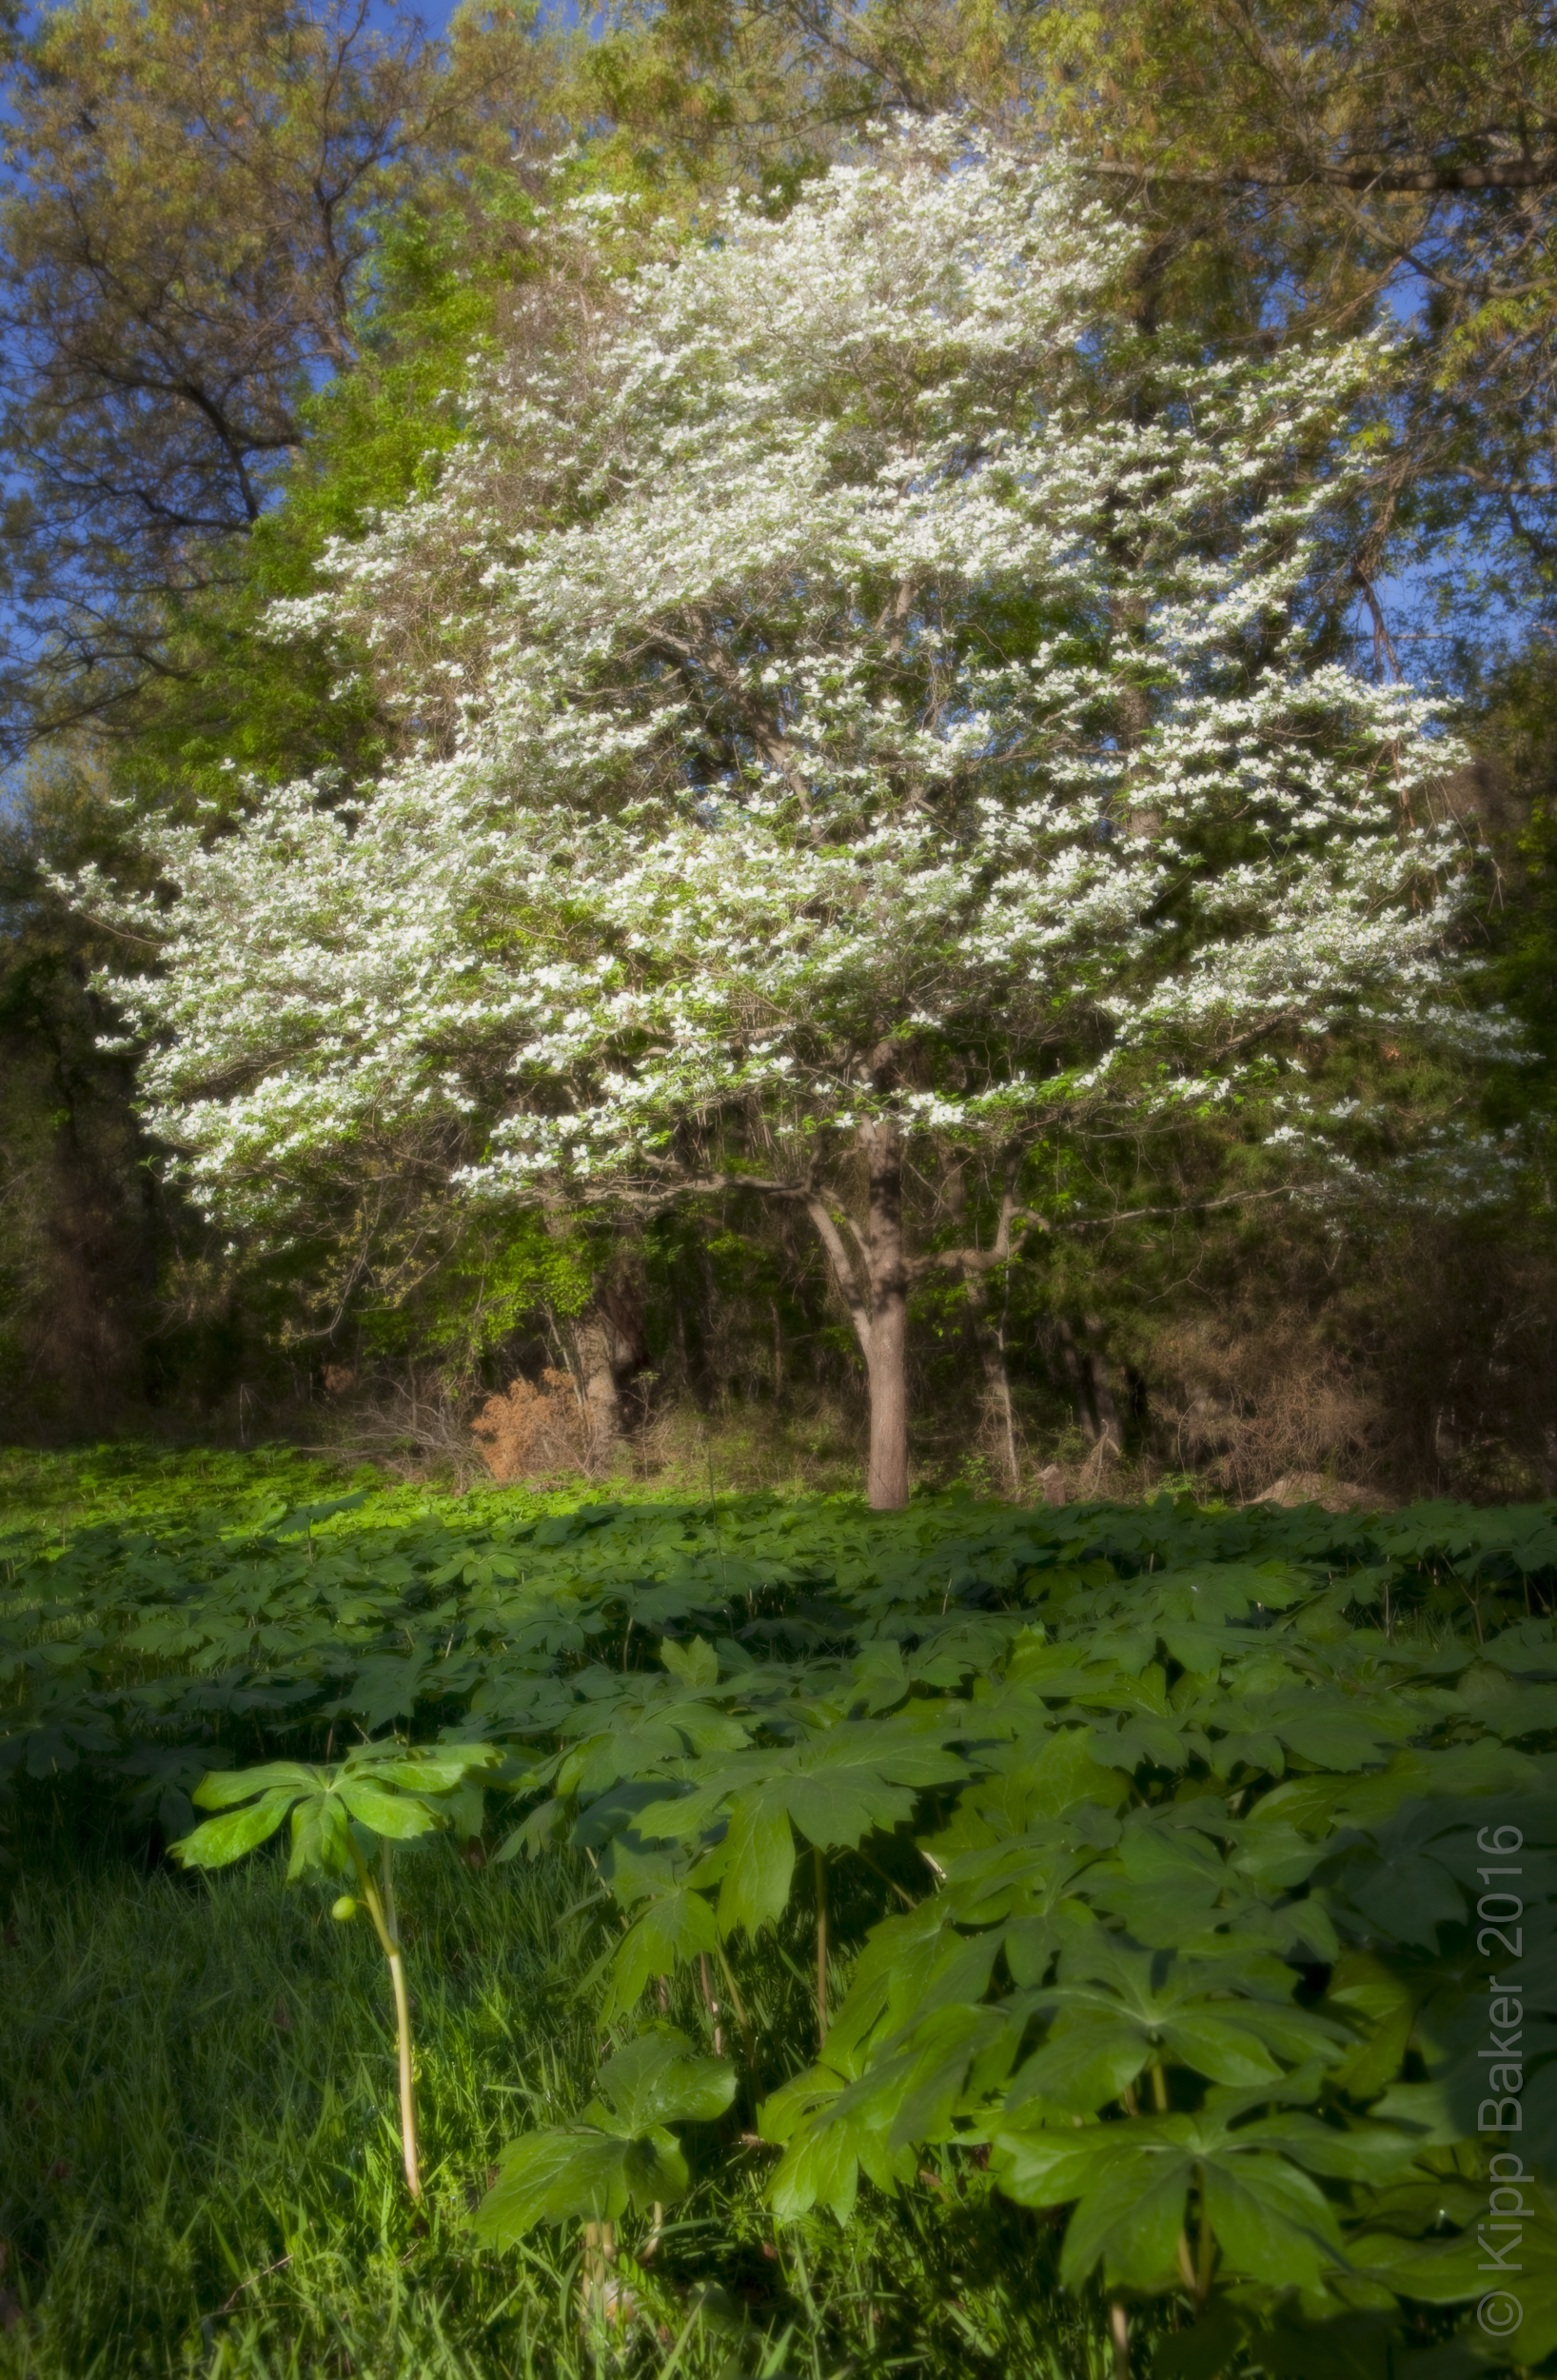 Dogwood tree in April, Near Whitefield, Oklahoma Copyright © Kipp Baker, All rights reserved.